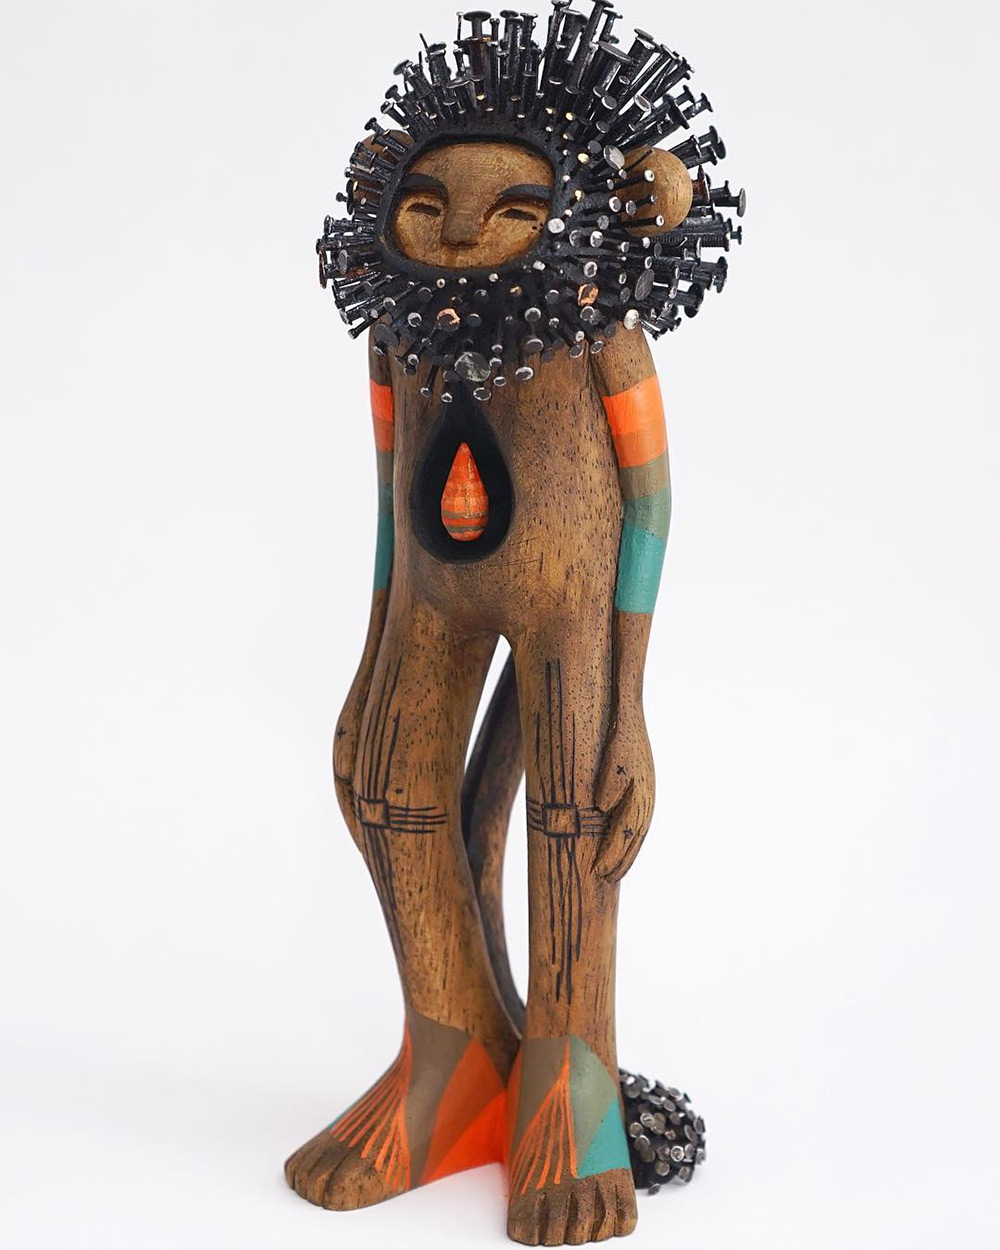 Stunningly Figurative Wood Sculptures Pierced With Hundreds Of Nails By Jaime Molina 5